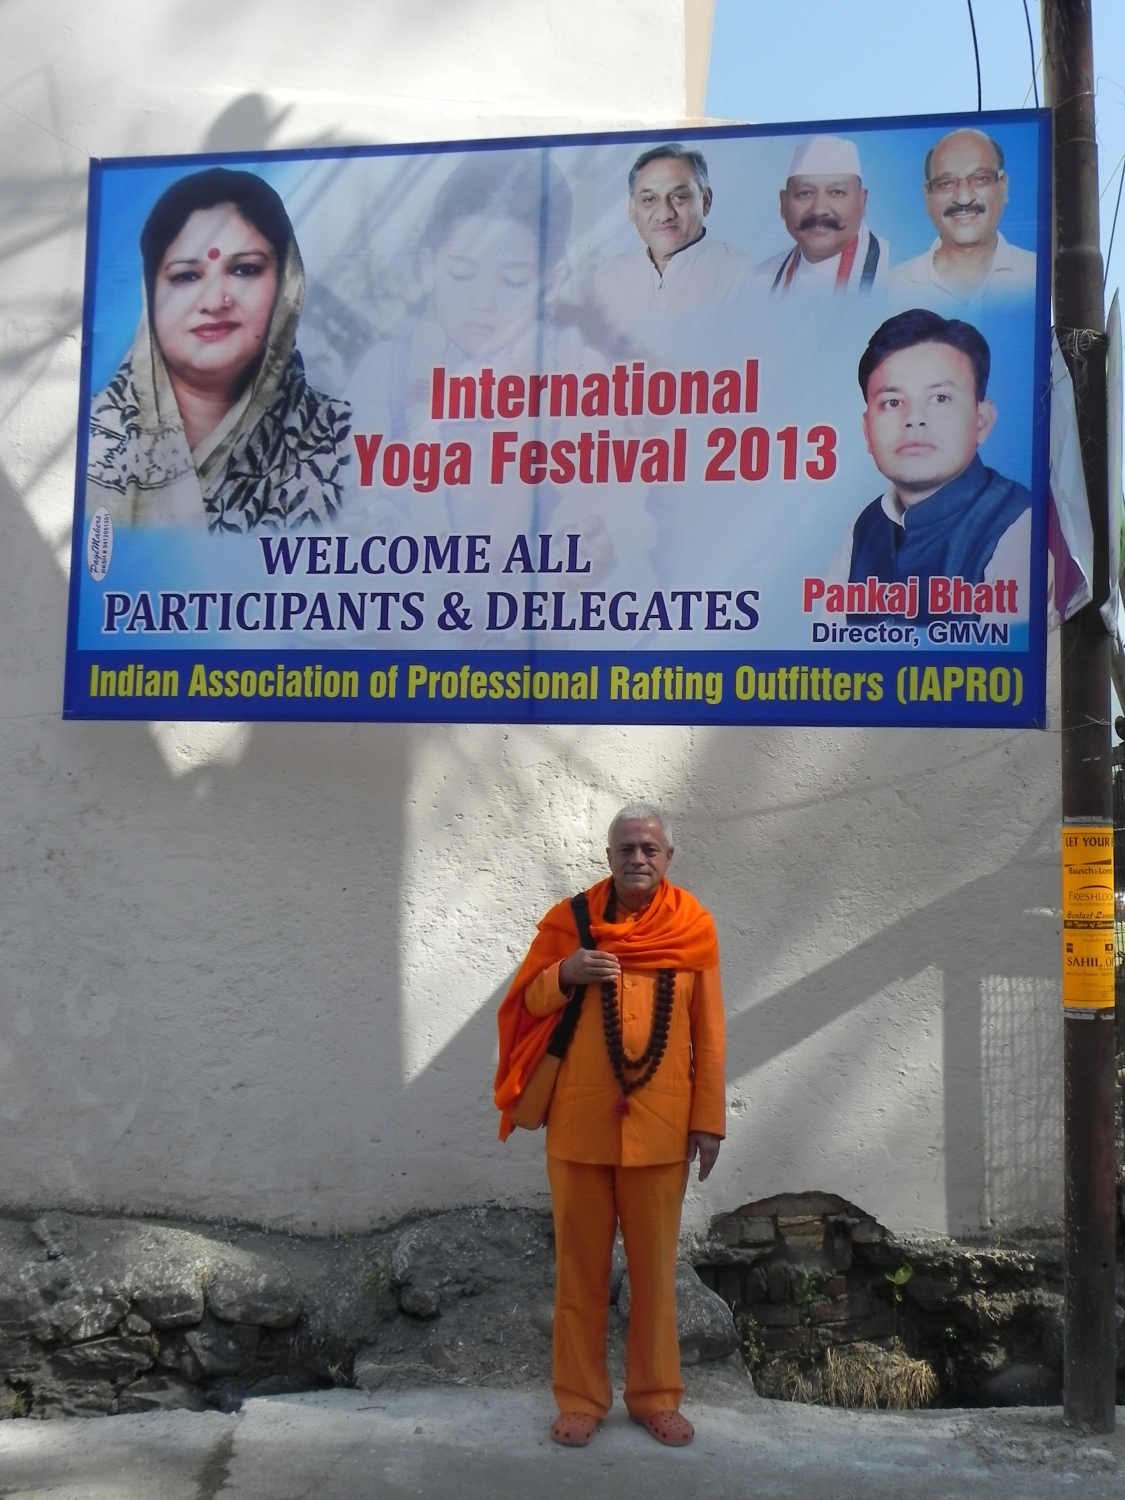 International Yoga Festival - rshikesh, Inde - 2013, mars